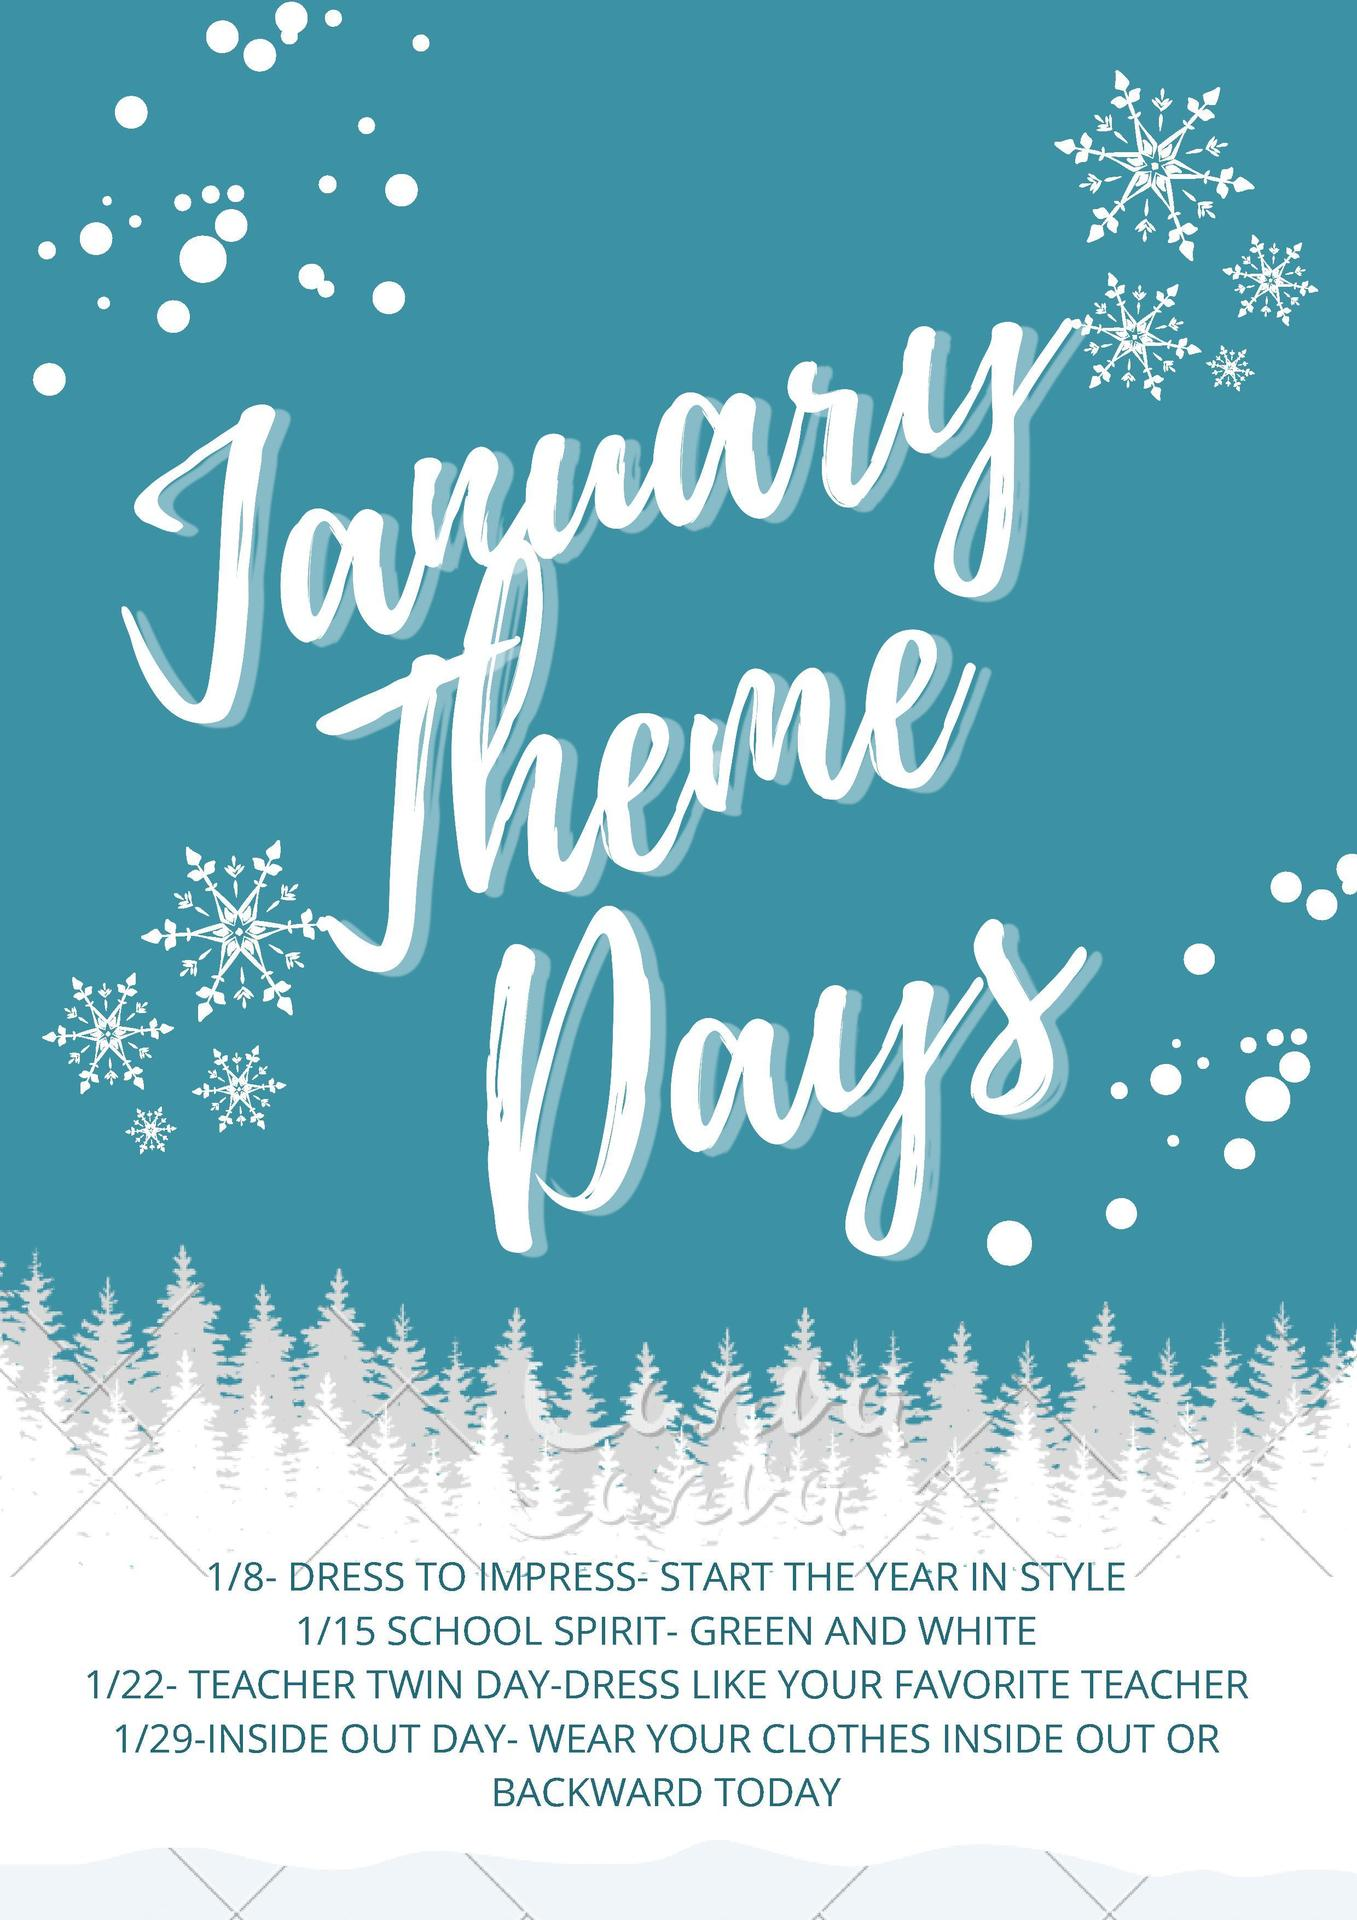 January Theme Days